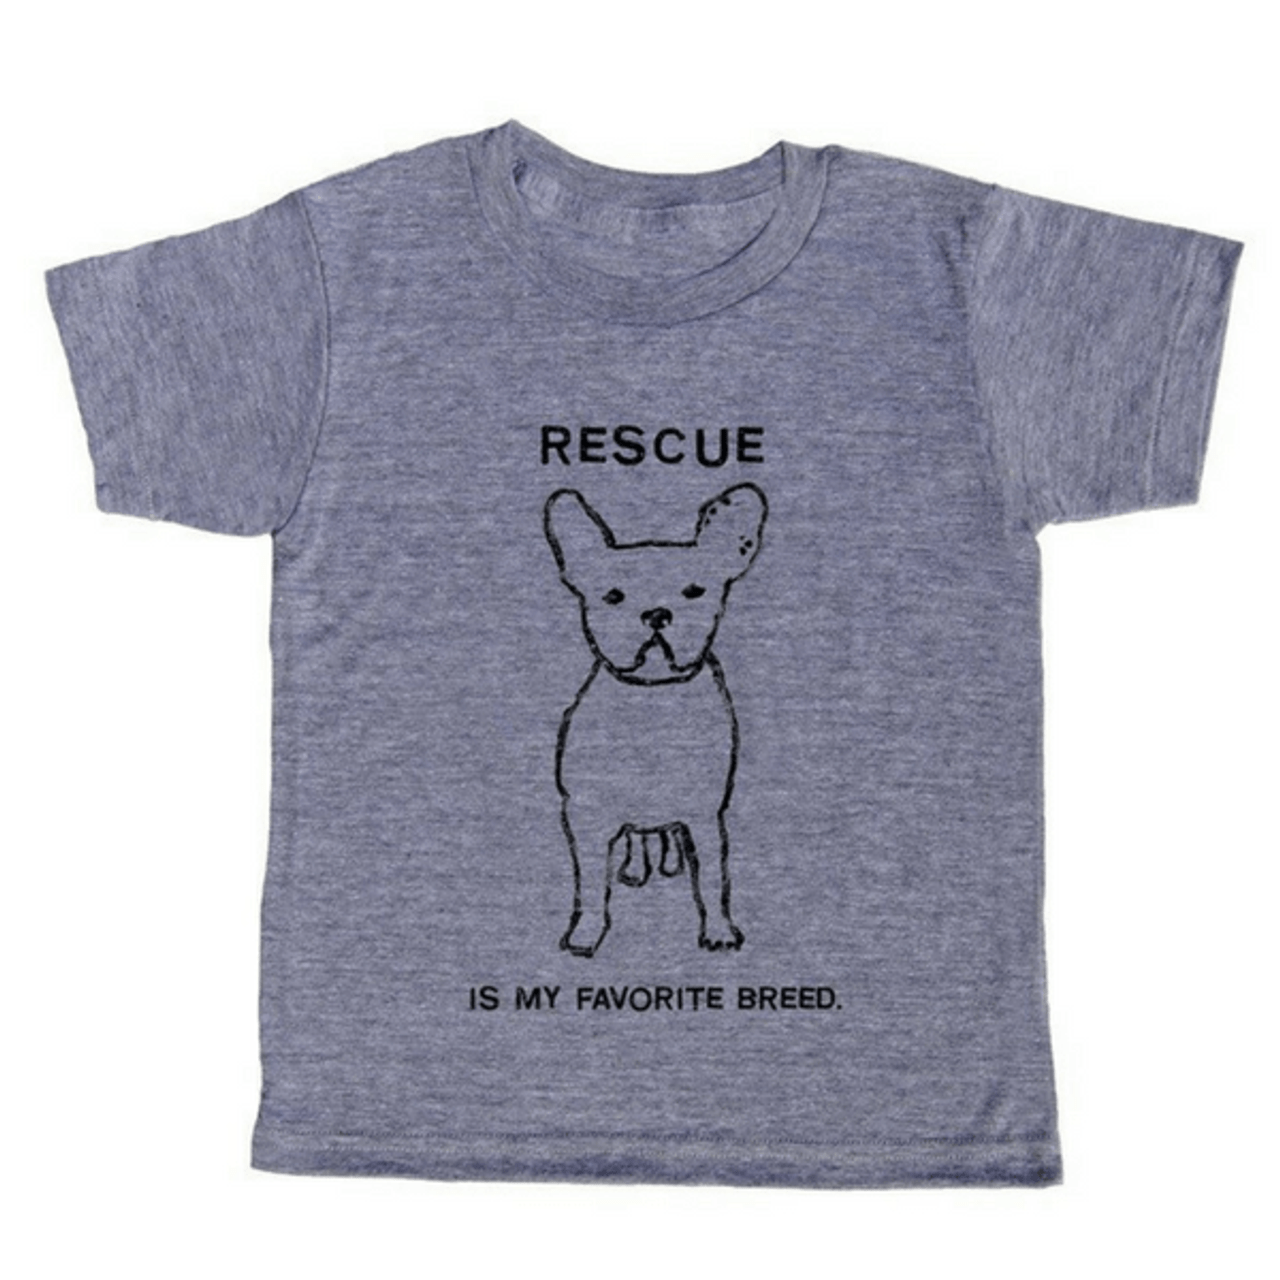 Brand New Tee Shirt Extra Large Blood Donor Challenge For Dog Rescue Charity